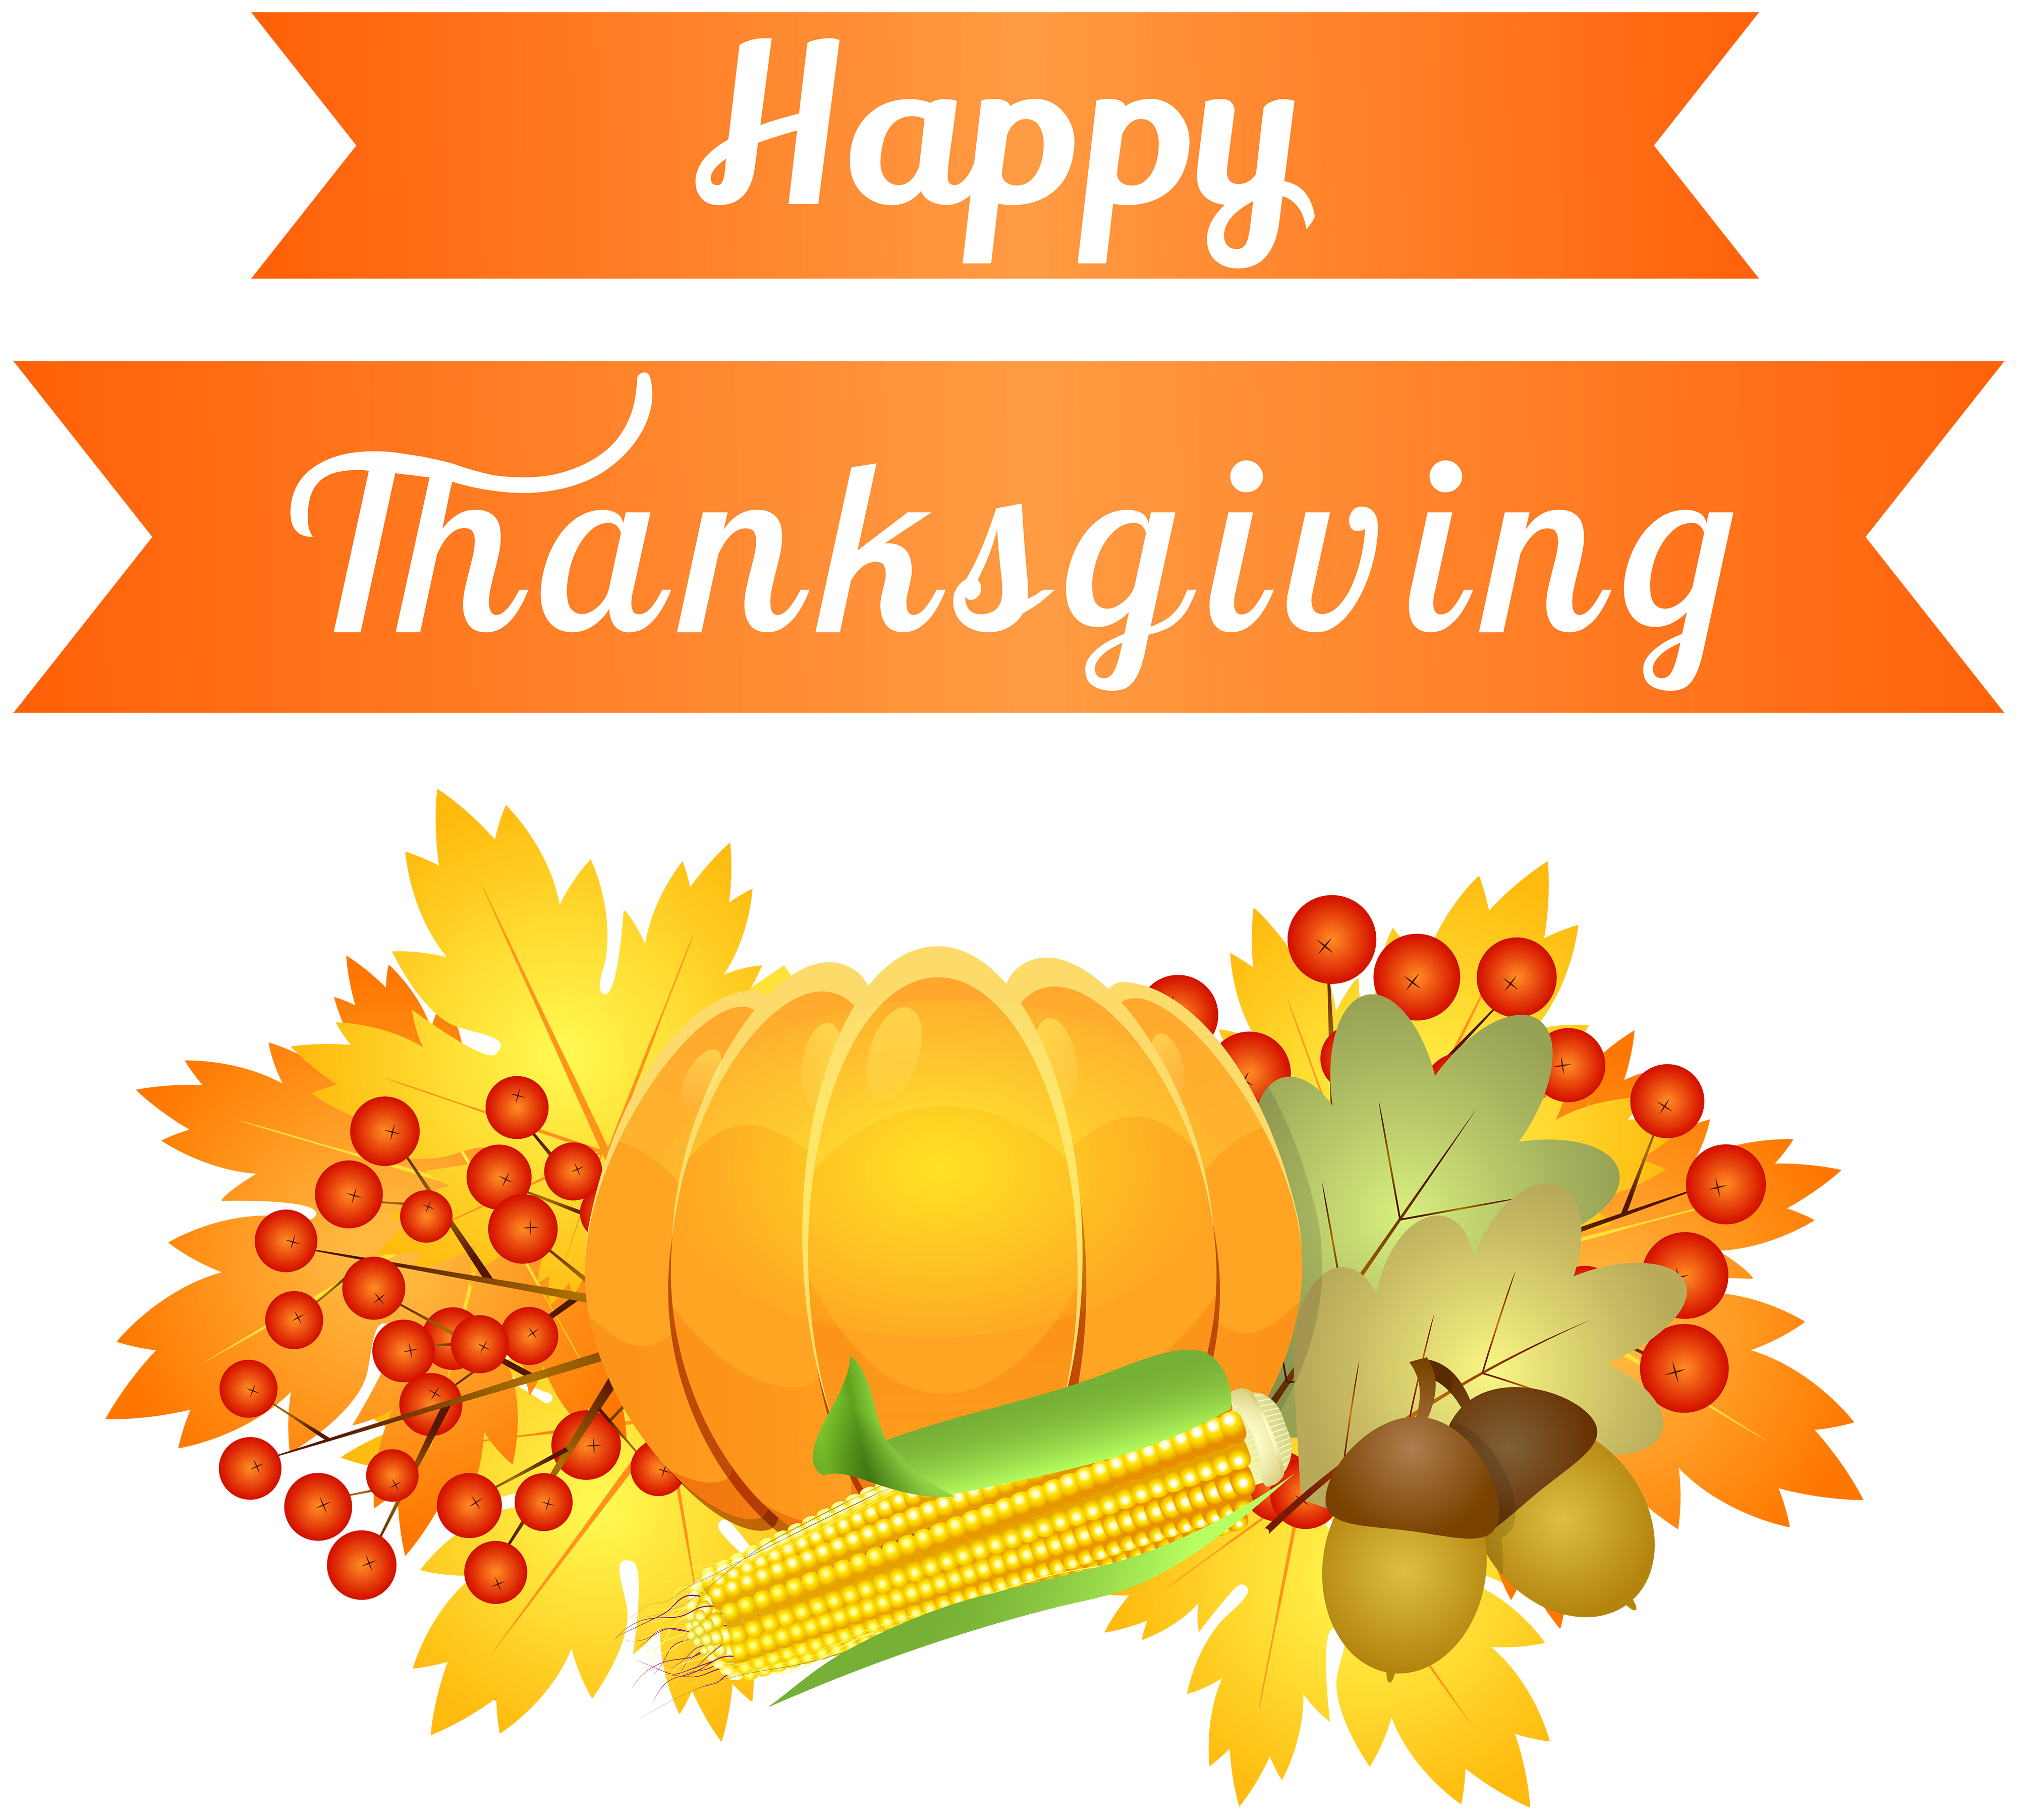 Happy decoration png image. Clipart calendar thanksgiving